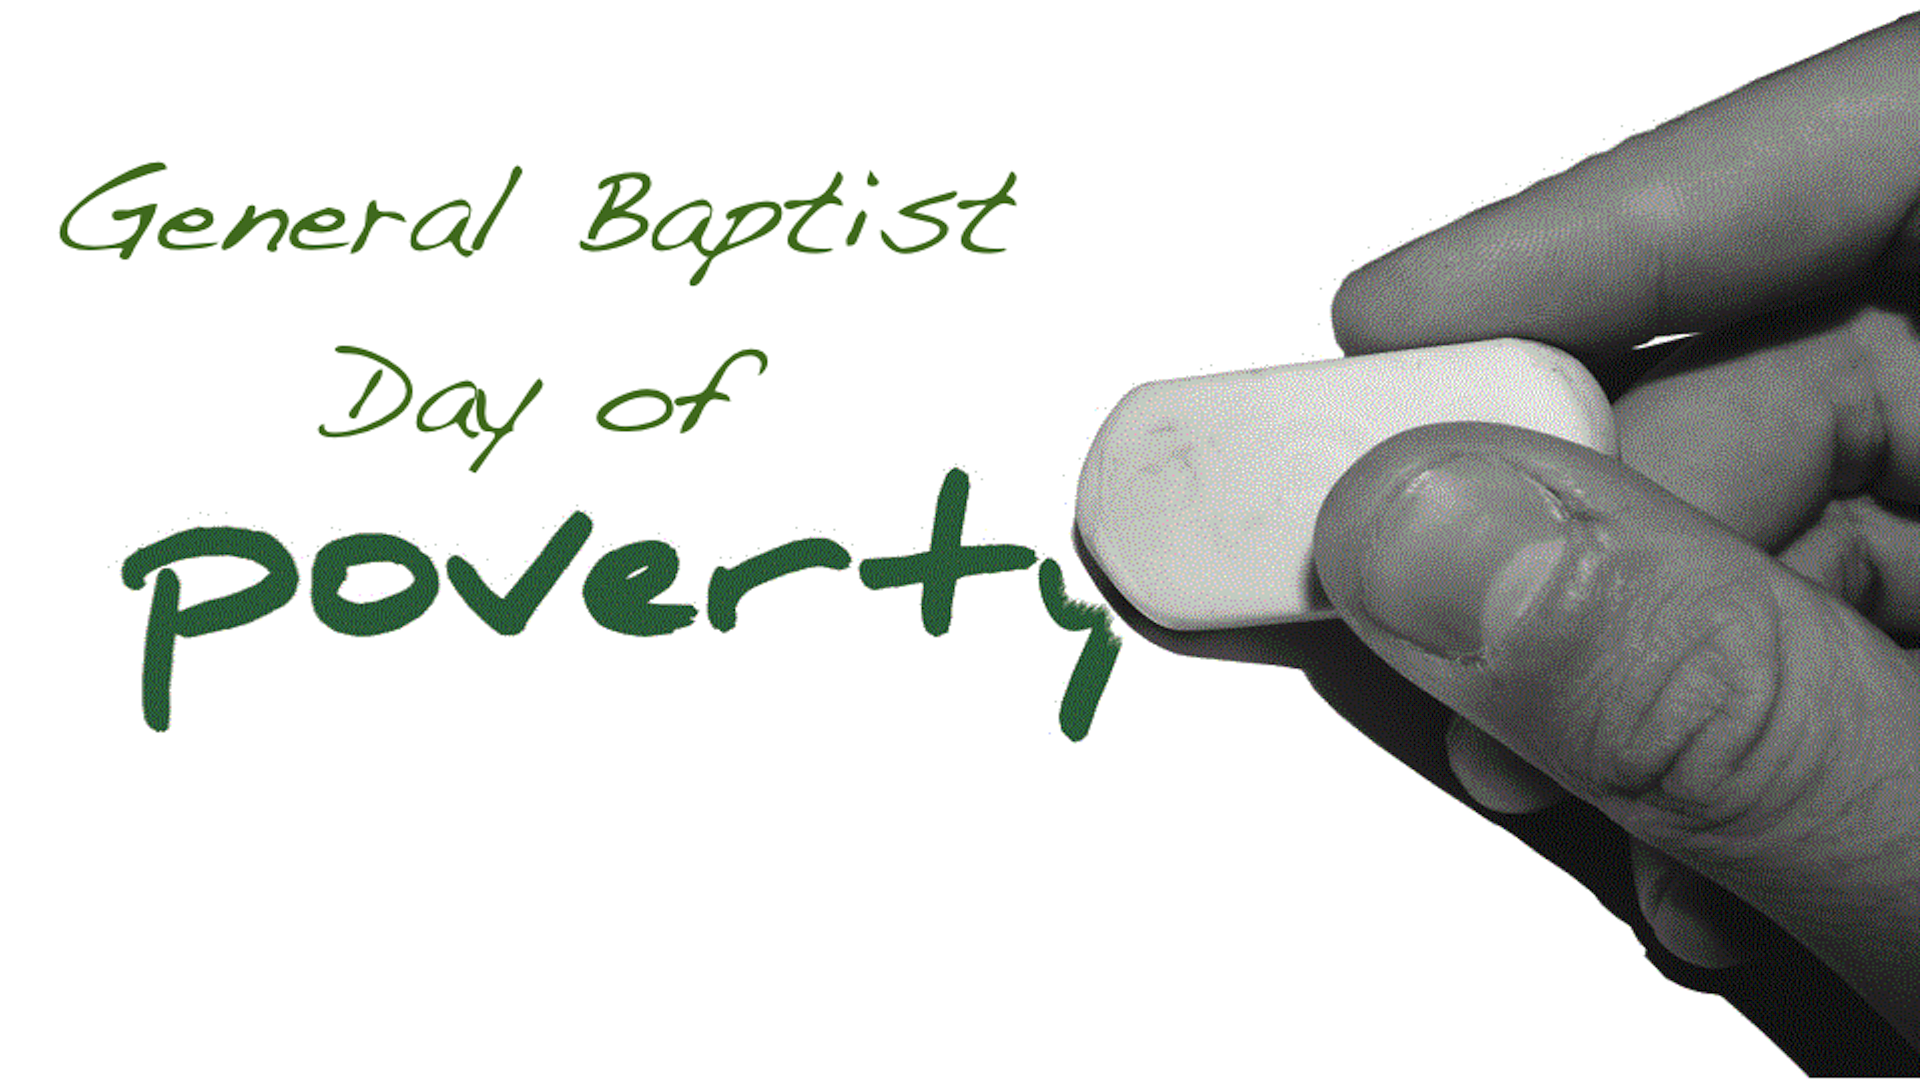 Day of Poverty Resources